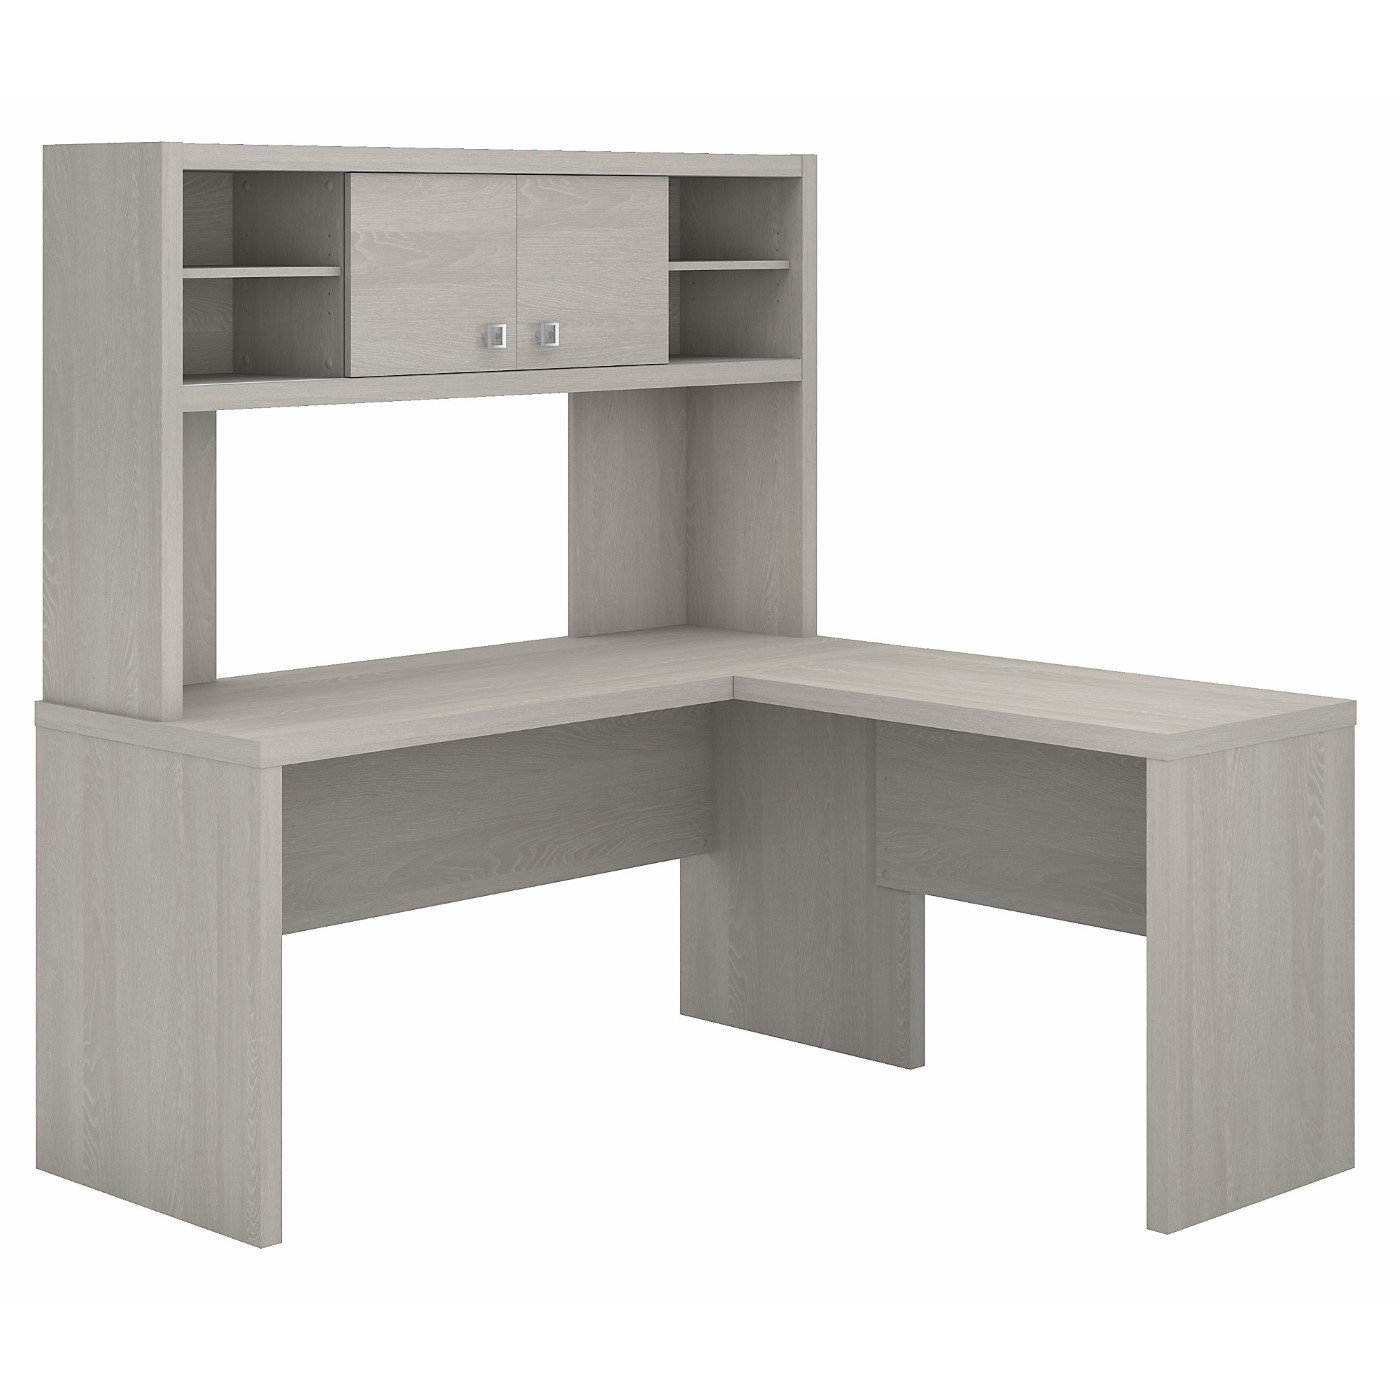 The kathy ireland� Echo L Shaped Desk with Hutch is Sustainable Eco Friendly Furniture. Includes Free Shipping! 30H x 72L x 72W  VIDEO BELOW.